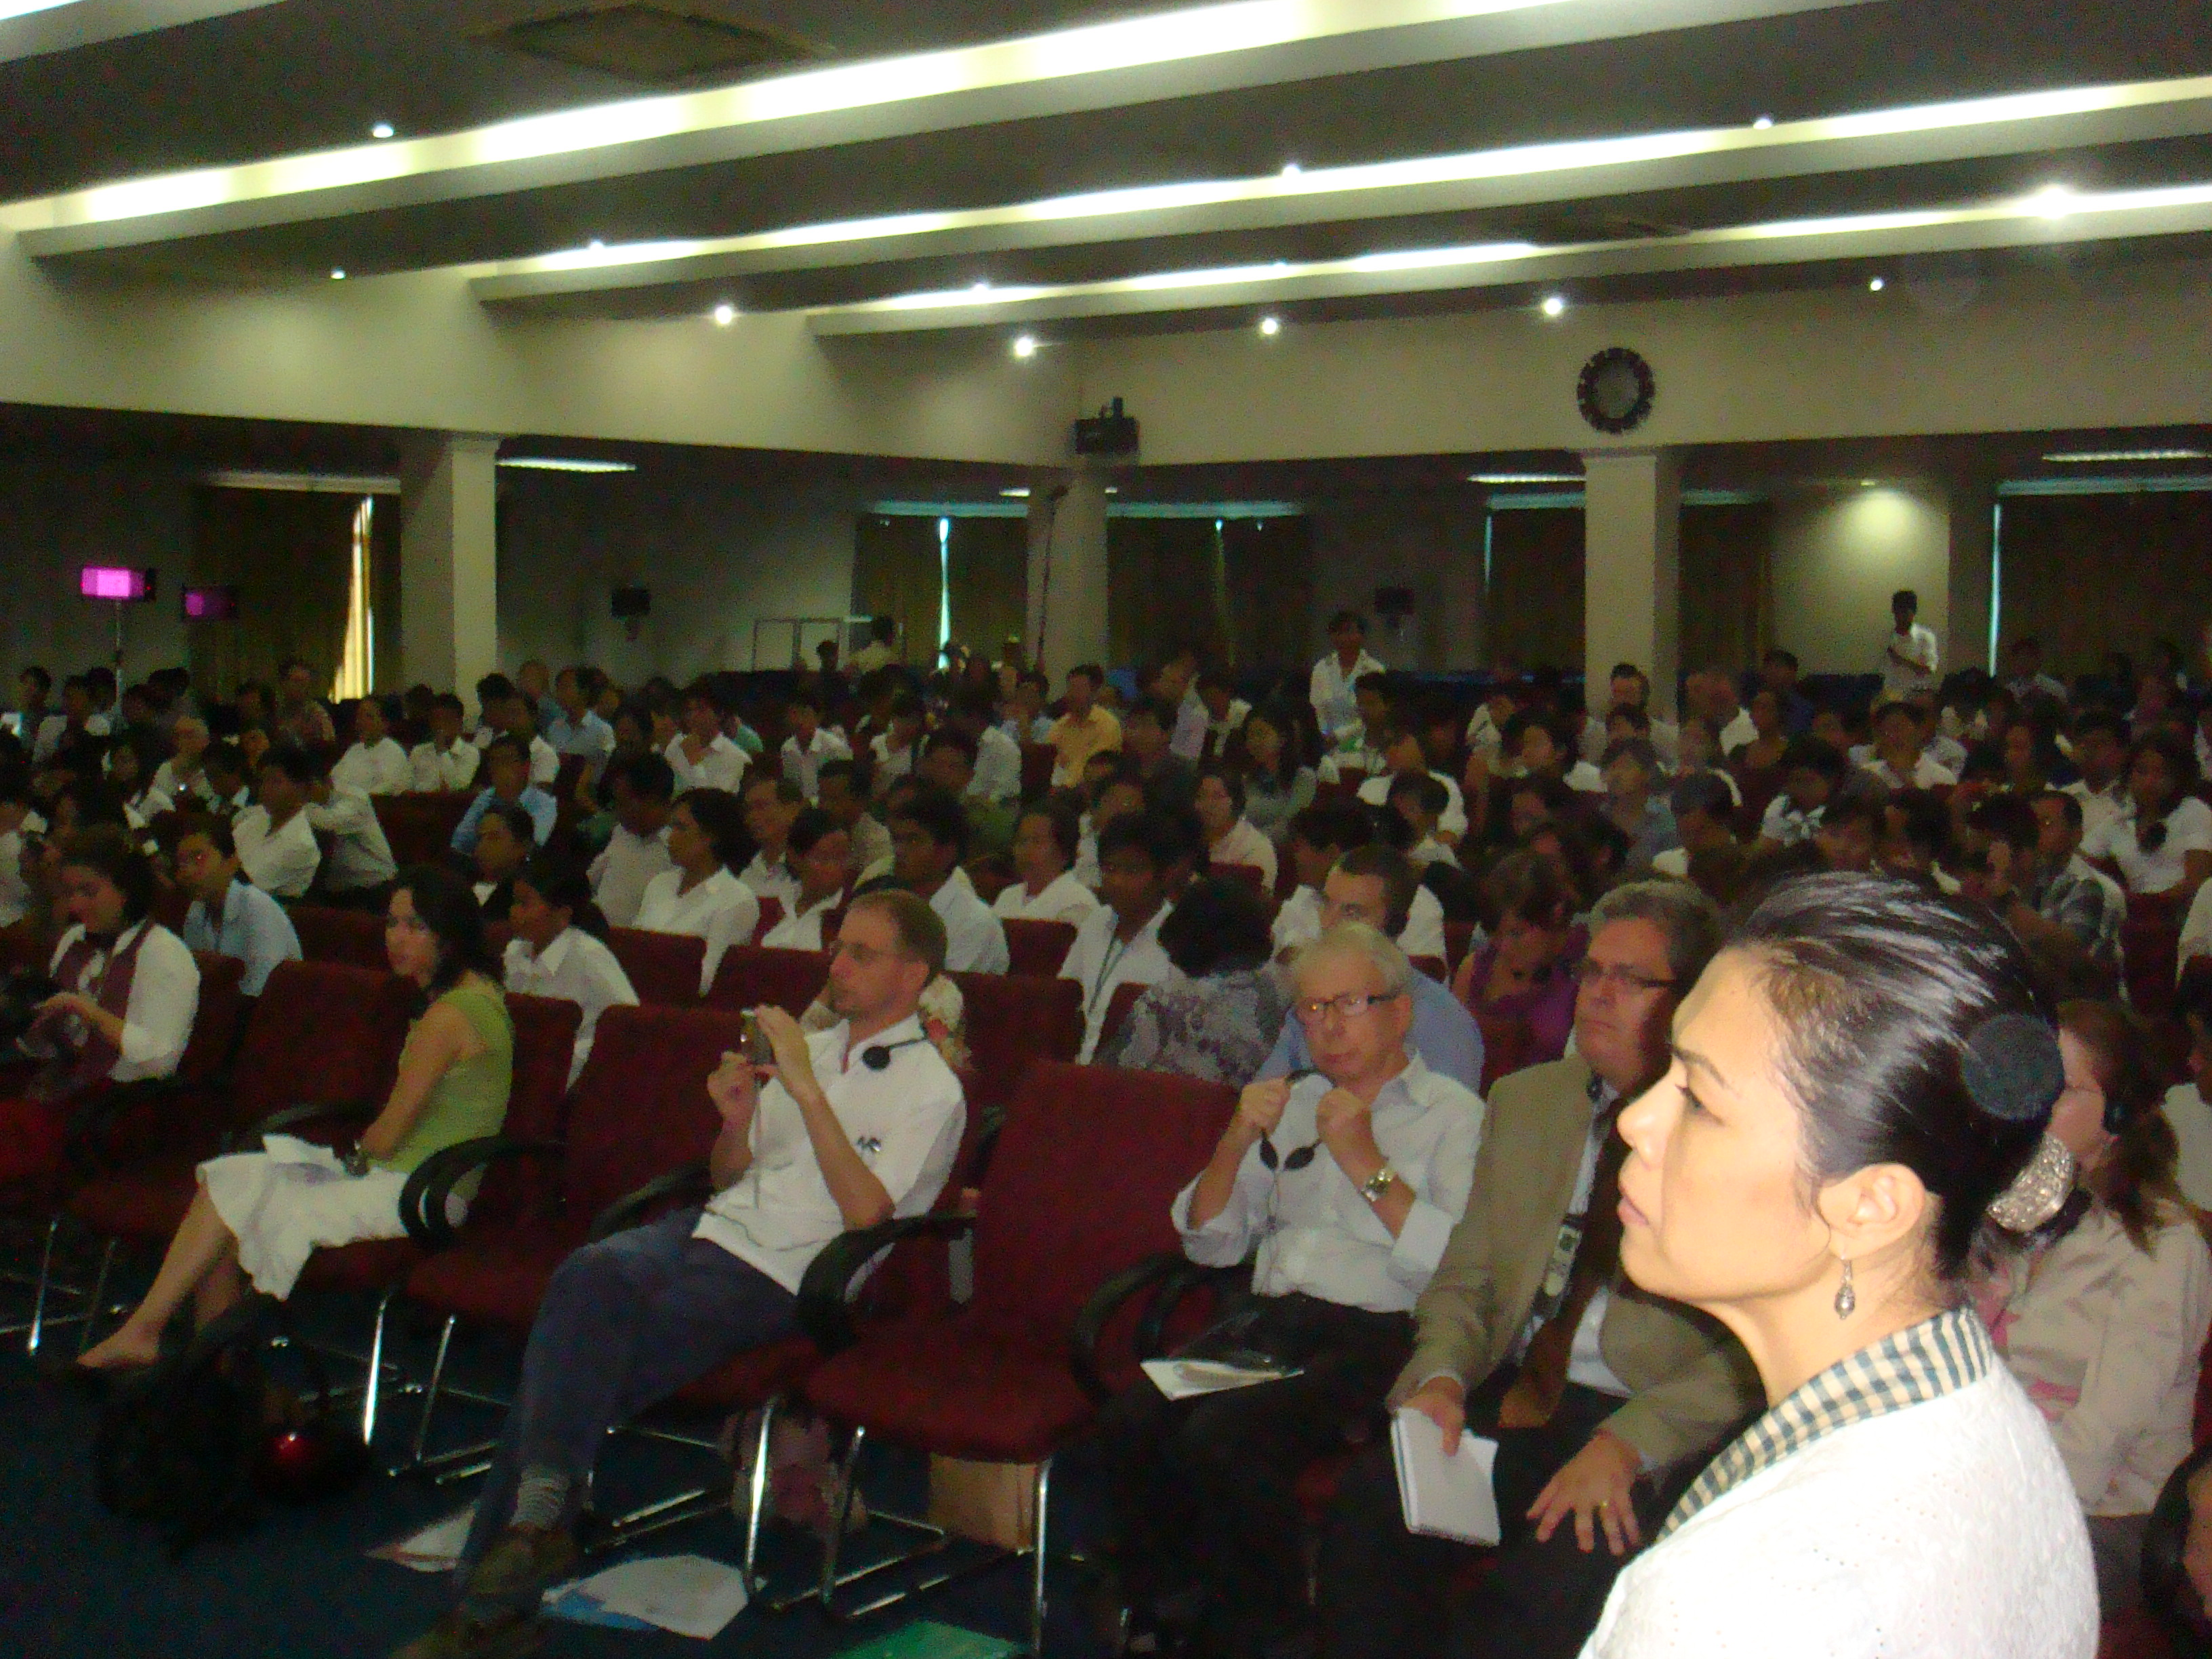 Theary Seng at CJR public forum on advent of Duch verdict, 23 July 2010